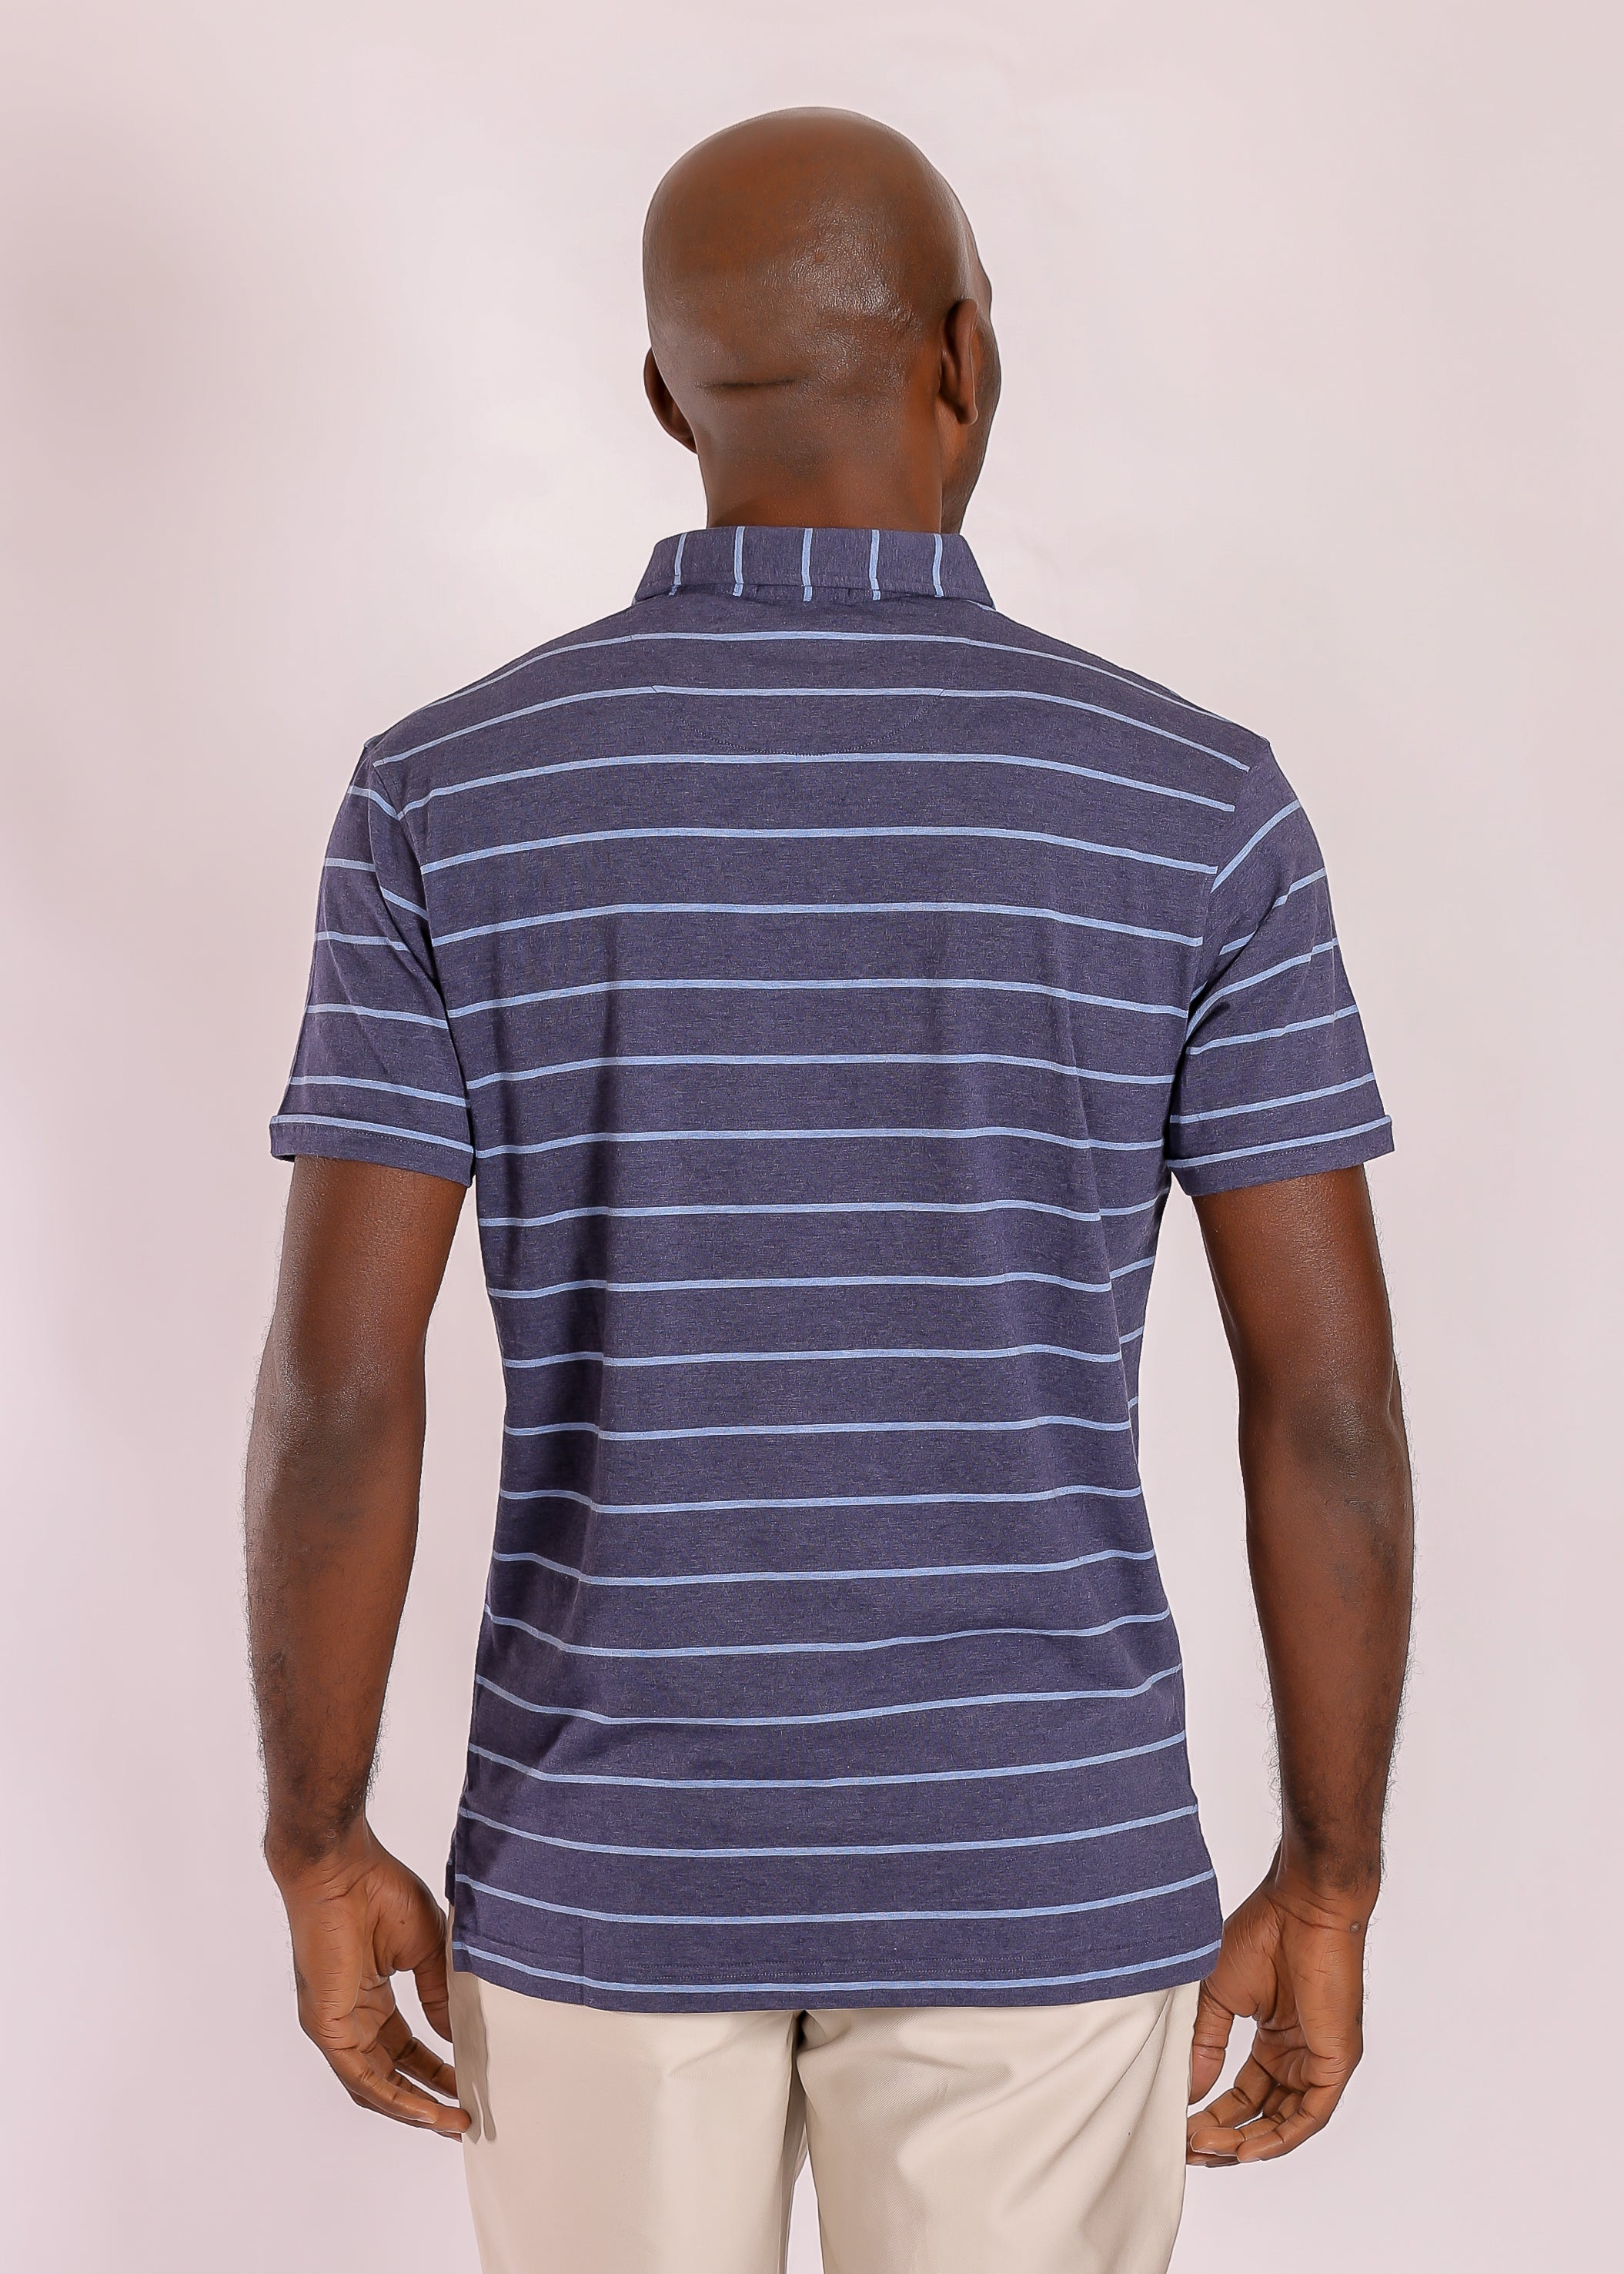 Morgan Polo Classic Wide Stripe - Yankee Blue/Vessel